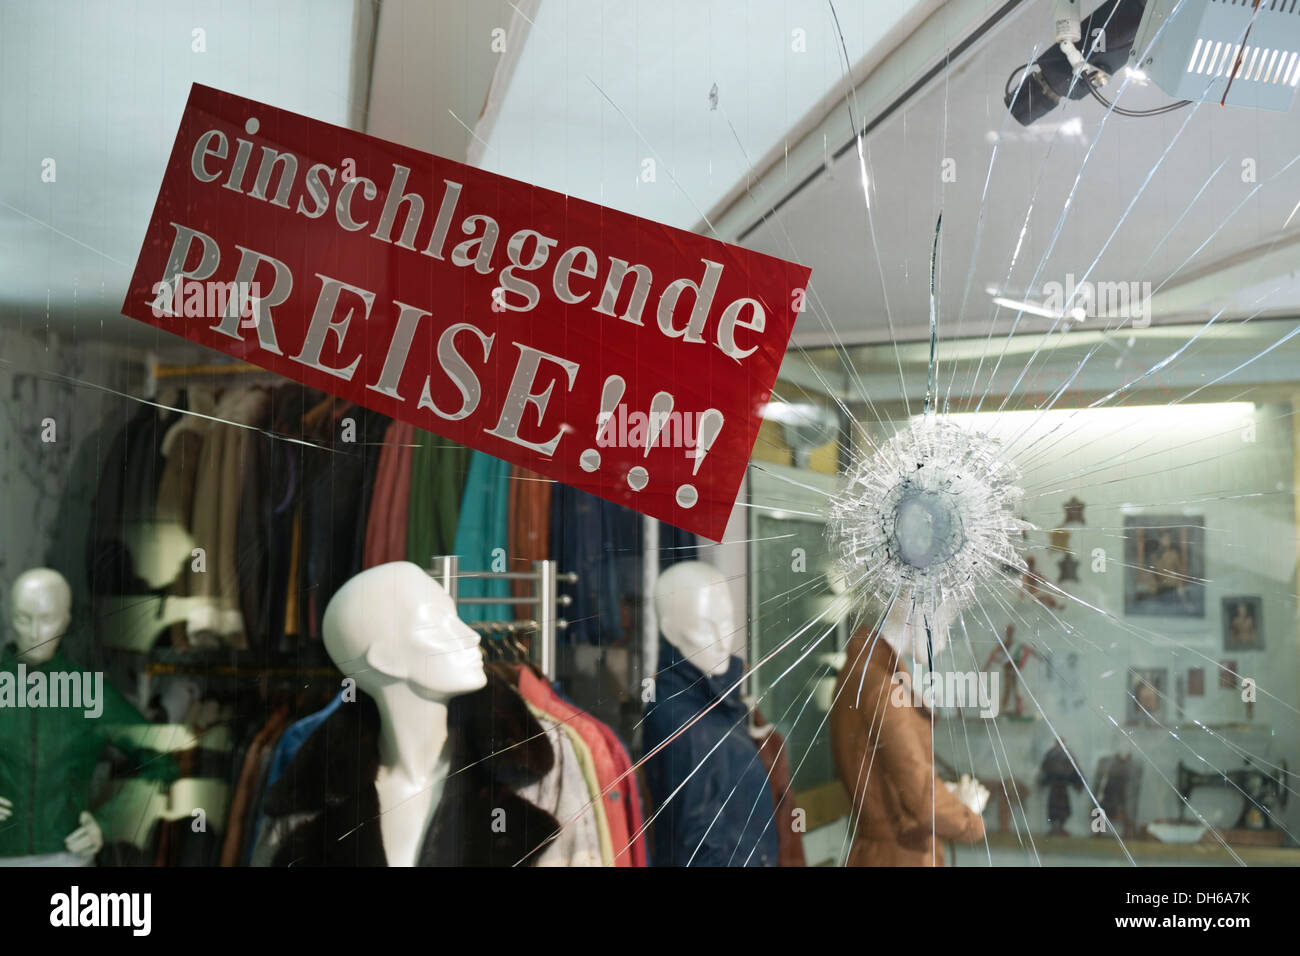 Einschlagende Preise, German for smashing prices, advertising for a fashion store after the shop window made of - Stock Image